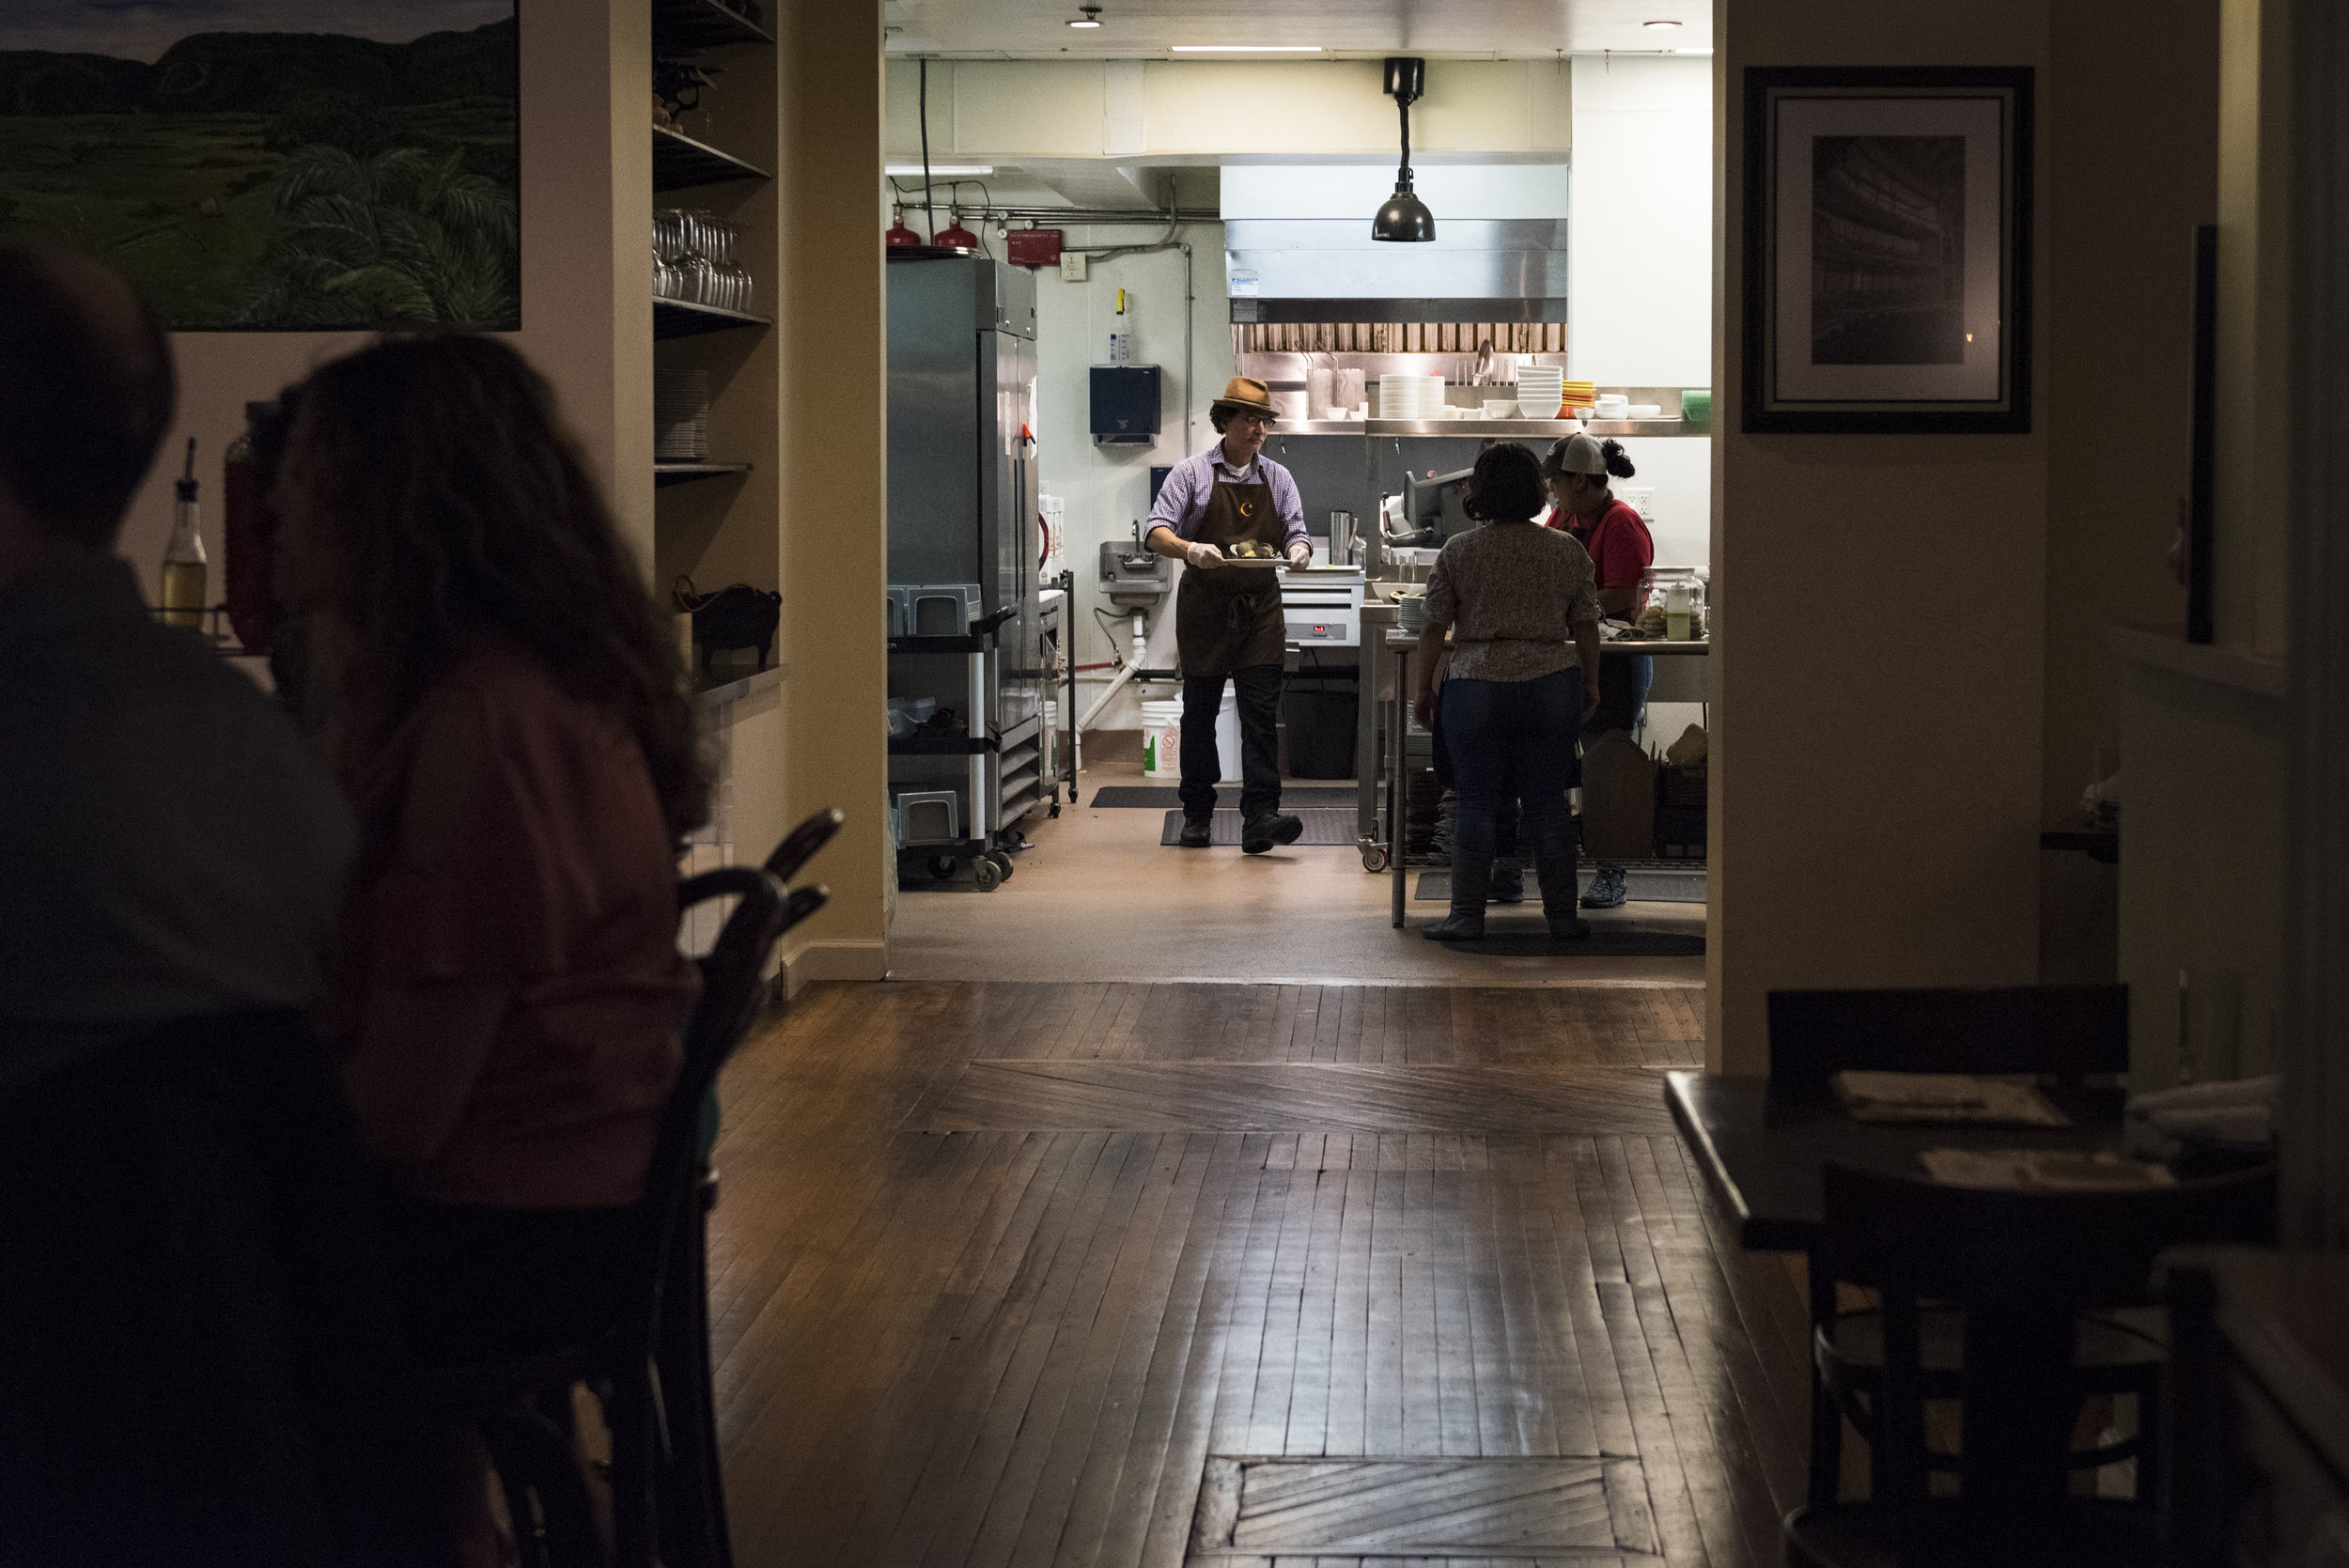 Roberto Copa Matos designed the interior of his restaurant and one of his main priorities was to have an open kitchen concept. The idea is that guests can always see what's going on inside the kitchen.